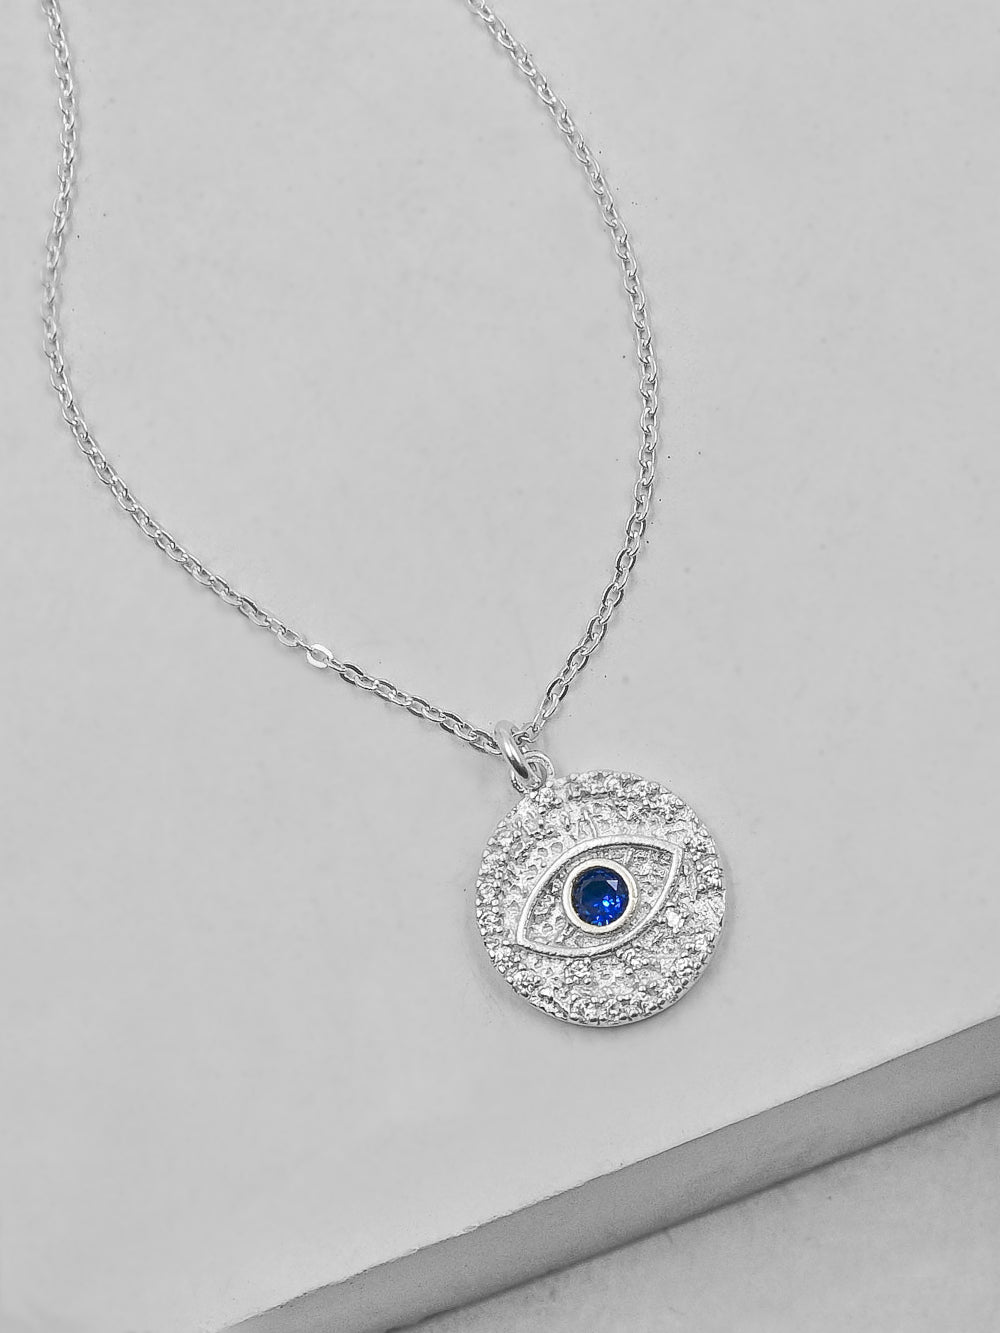 Silver Sparkle Evil eye Necklace by The Faint Hearted Jewelry